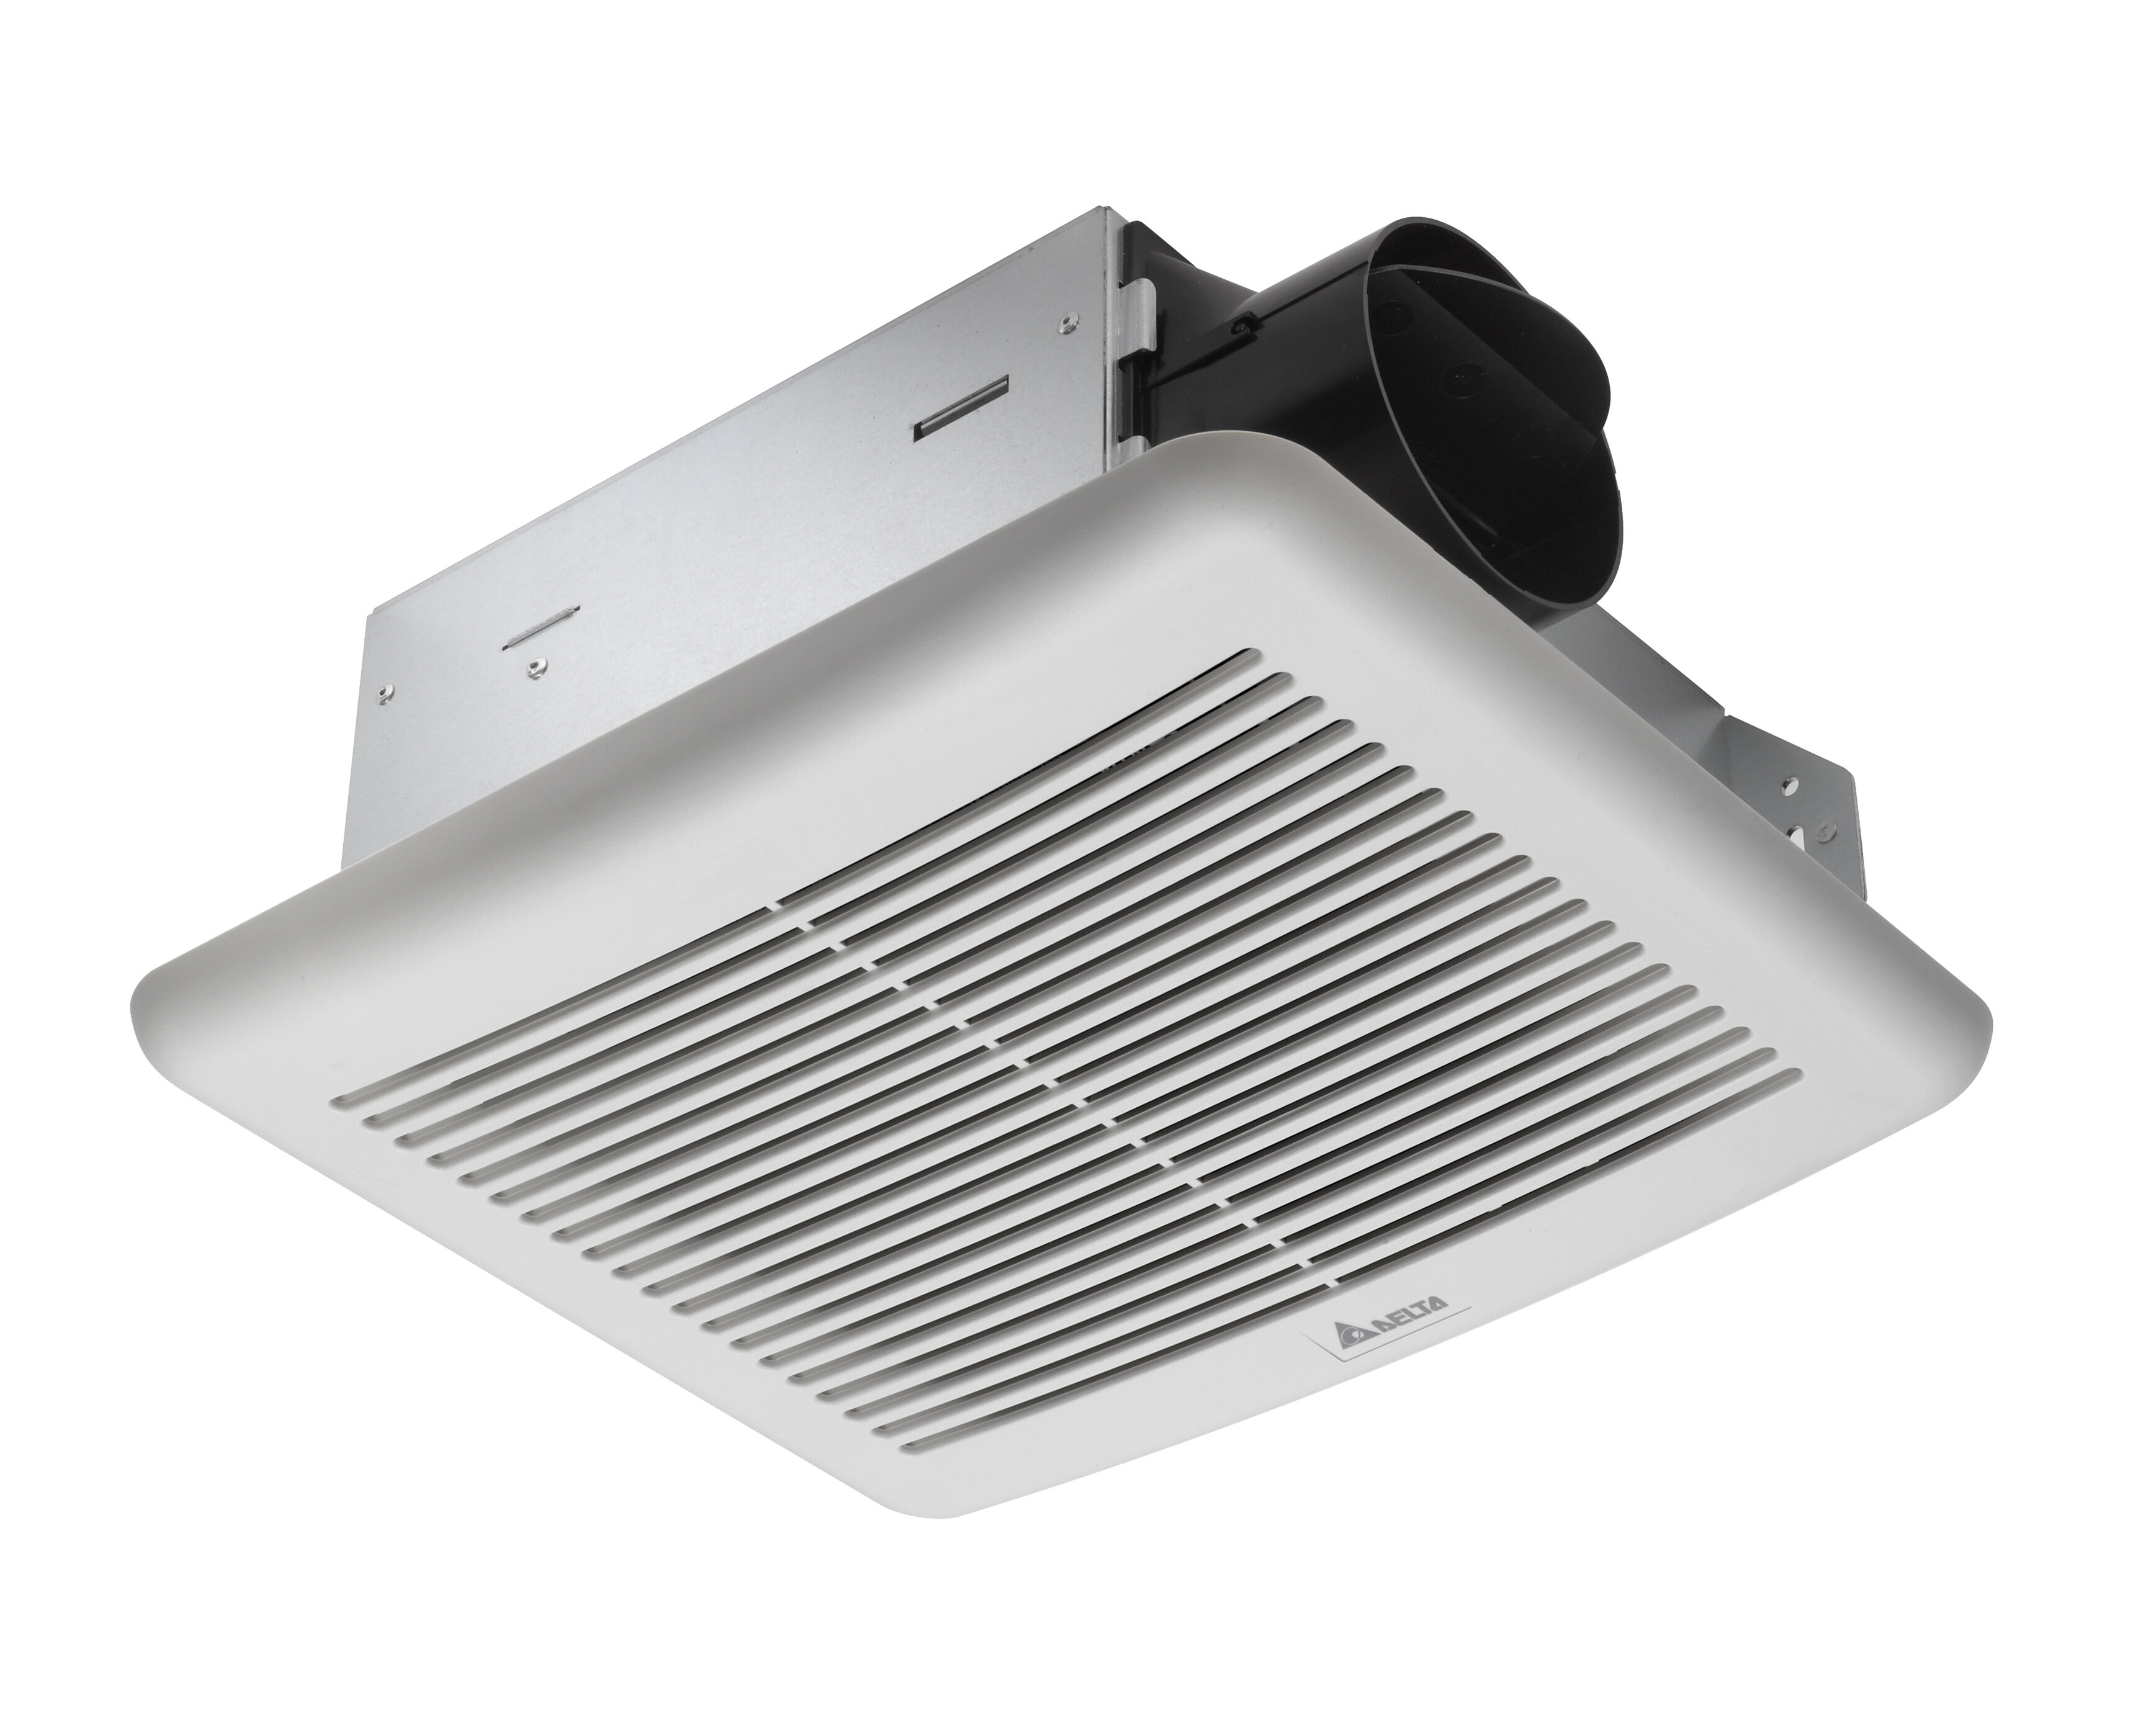 50 CFM Ceiling Exhaust Bath Fan with Light Classic White Design Polymeric New